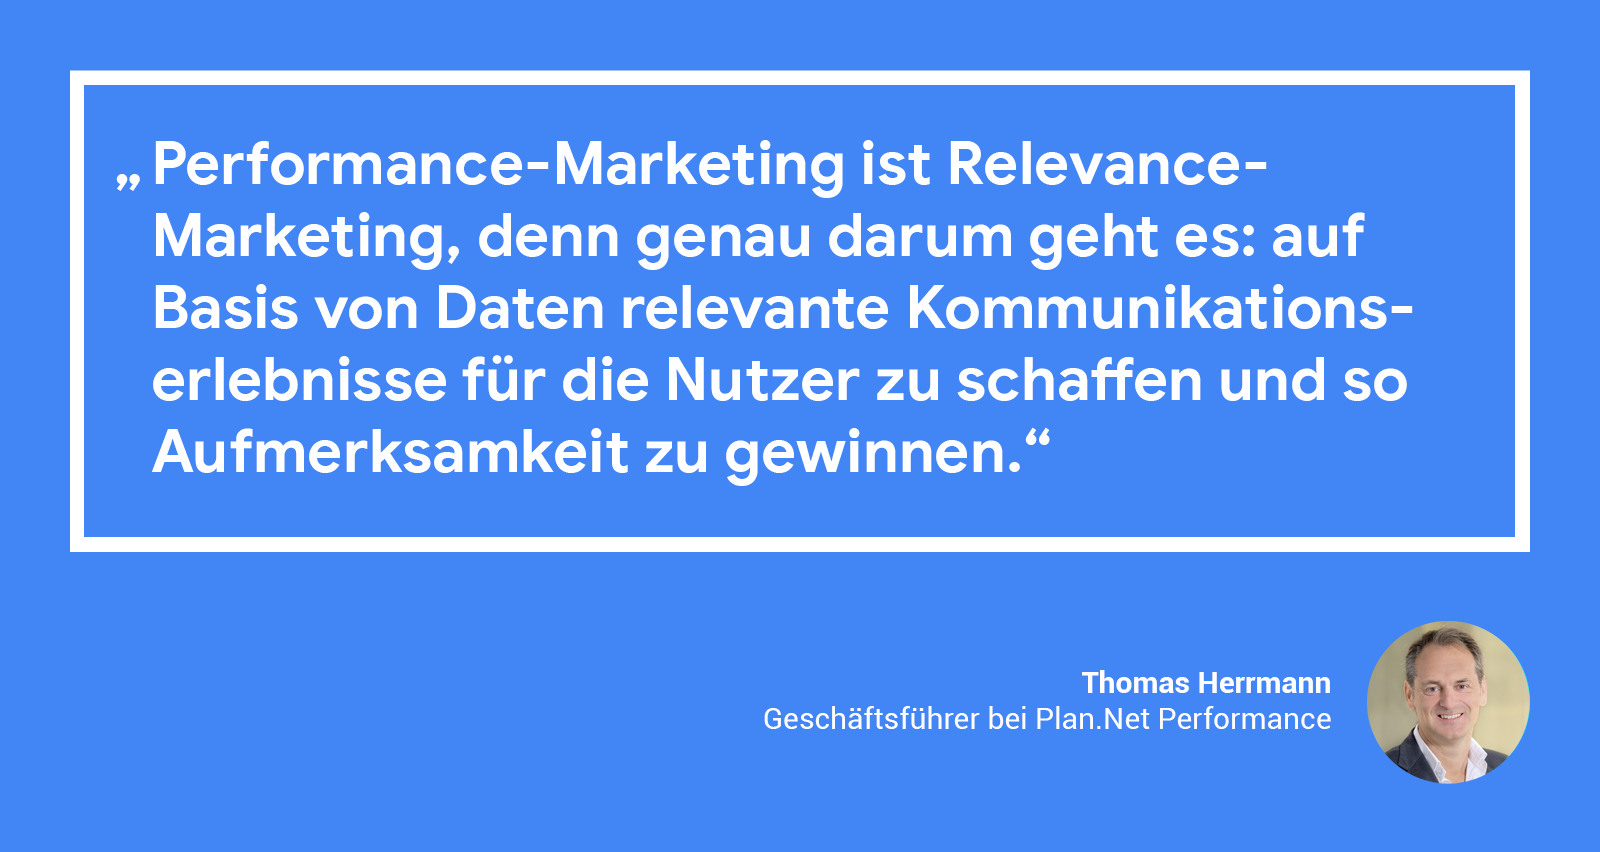 Plan Net Case Study Quote 1 Thomas Herrmann